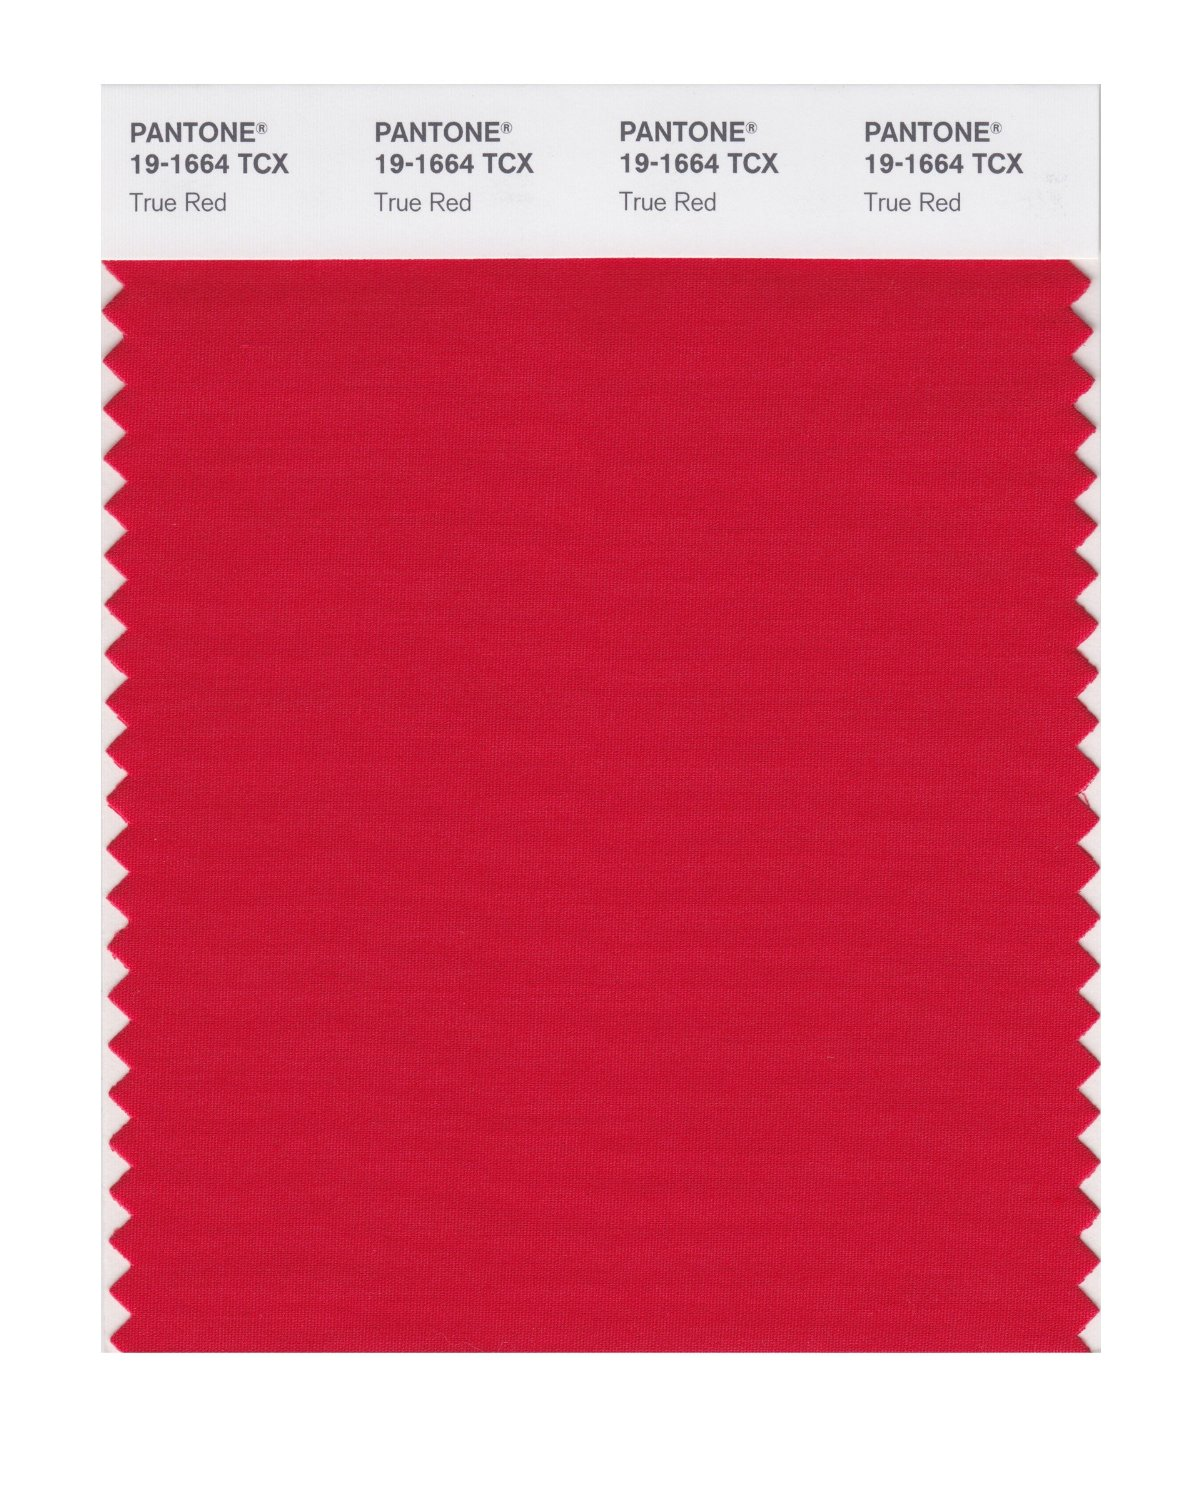 Pantone Smart Swatch 19-1664 True Red